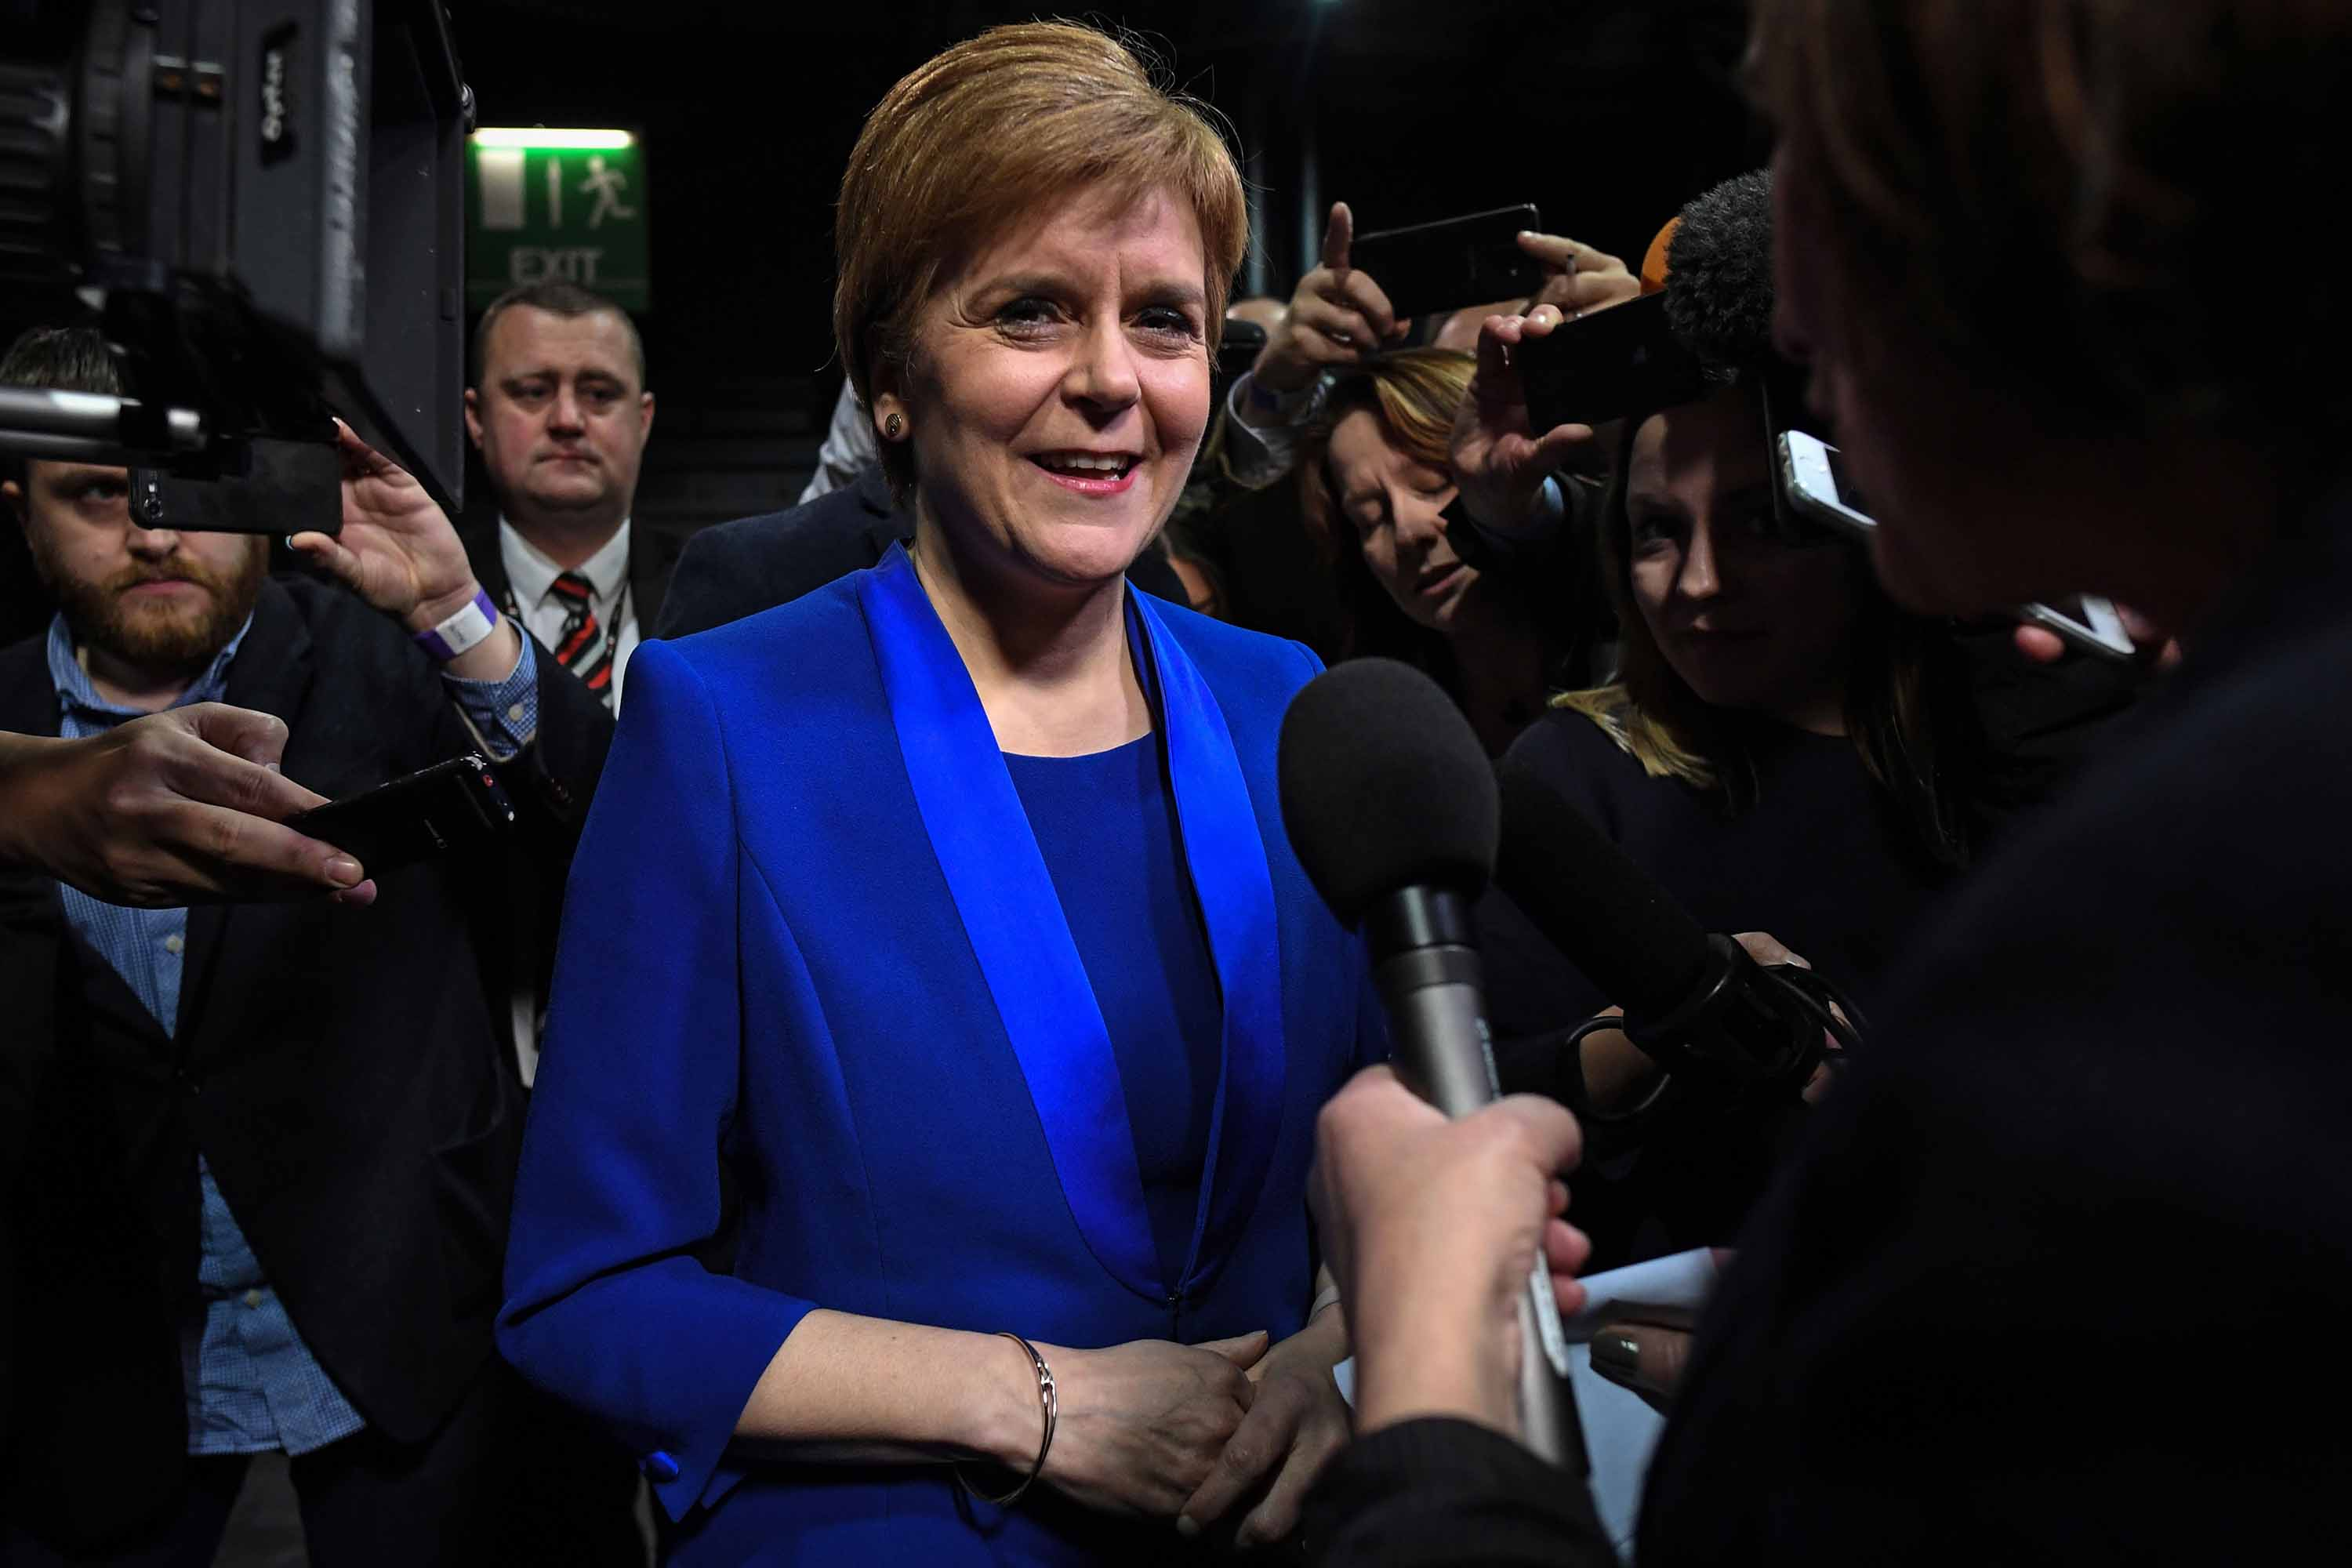 Scottish National Party leader Nicola Sturgeon talks to the media in Glasgow on Friday. Photo: Andy Buchanan/AFP via Getty Images